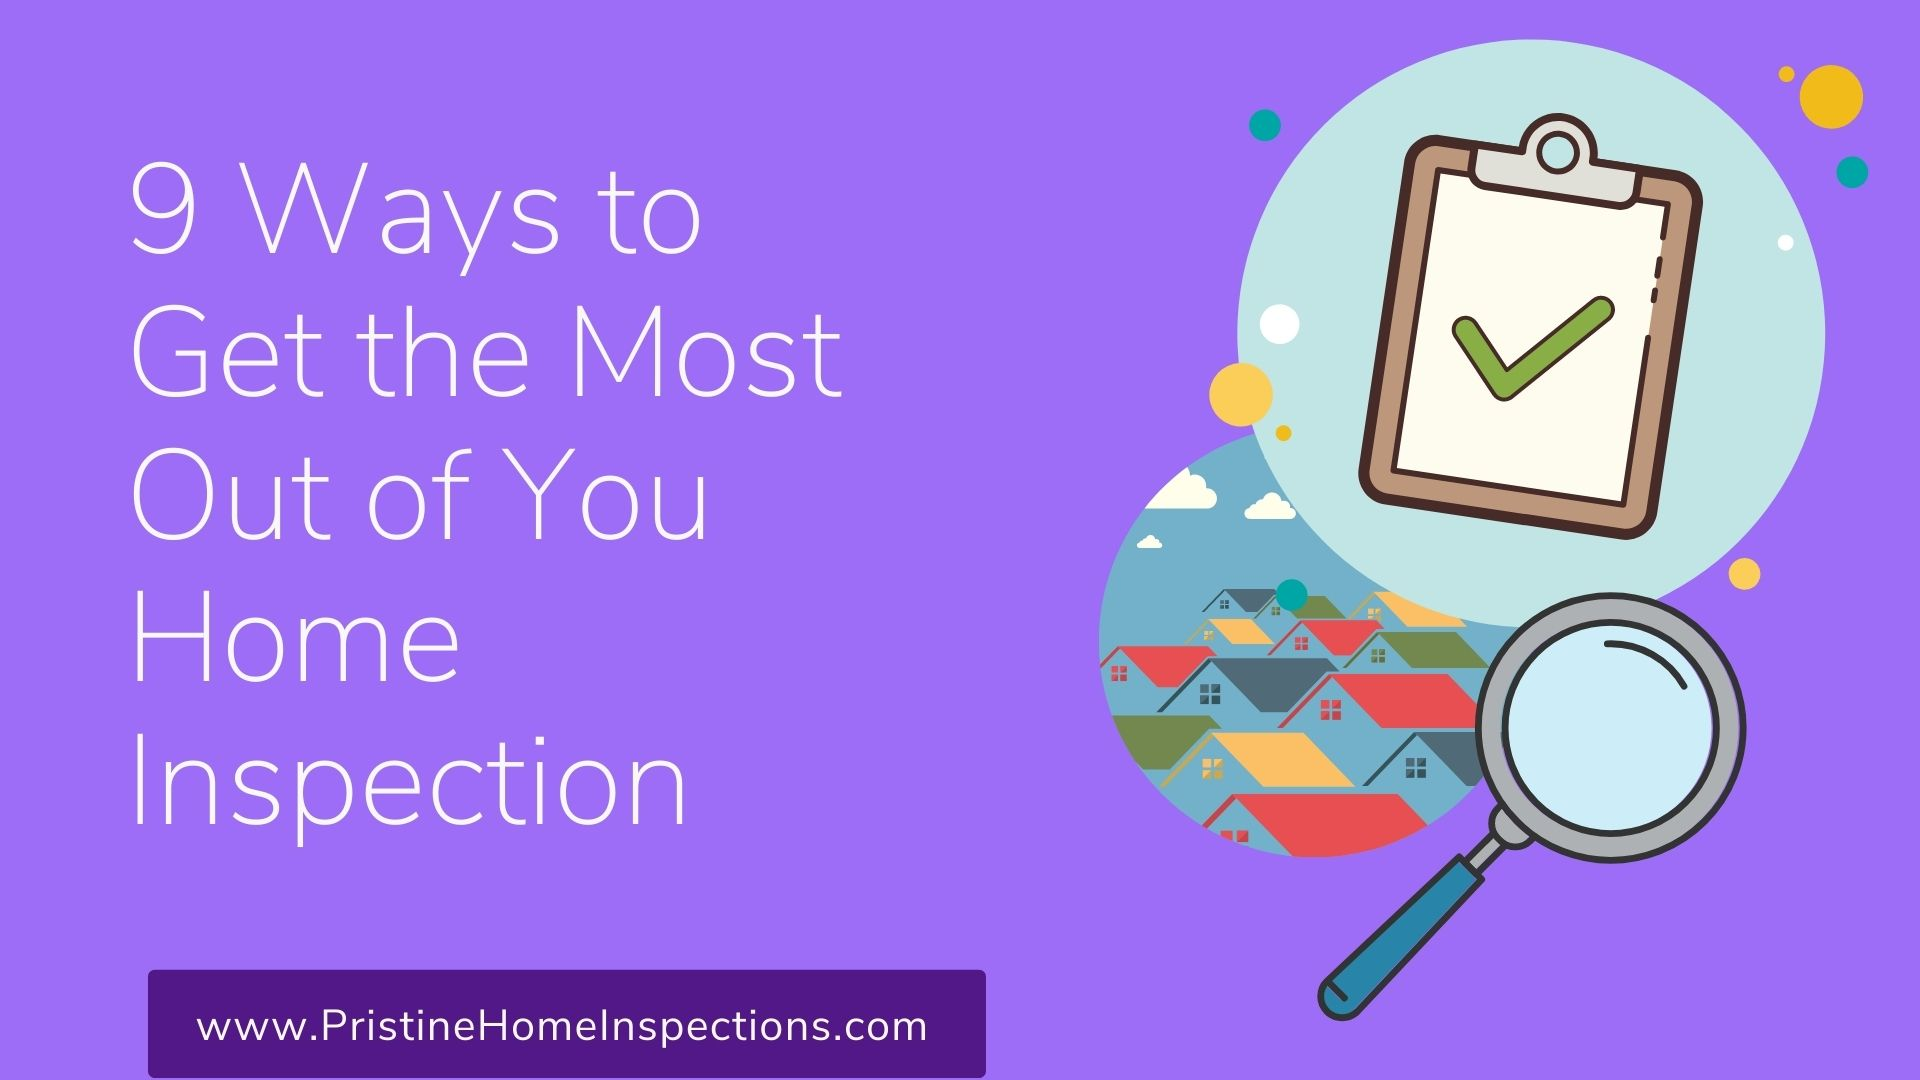 9 Ways to Get the Most Out of Your Home Inspection